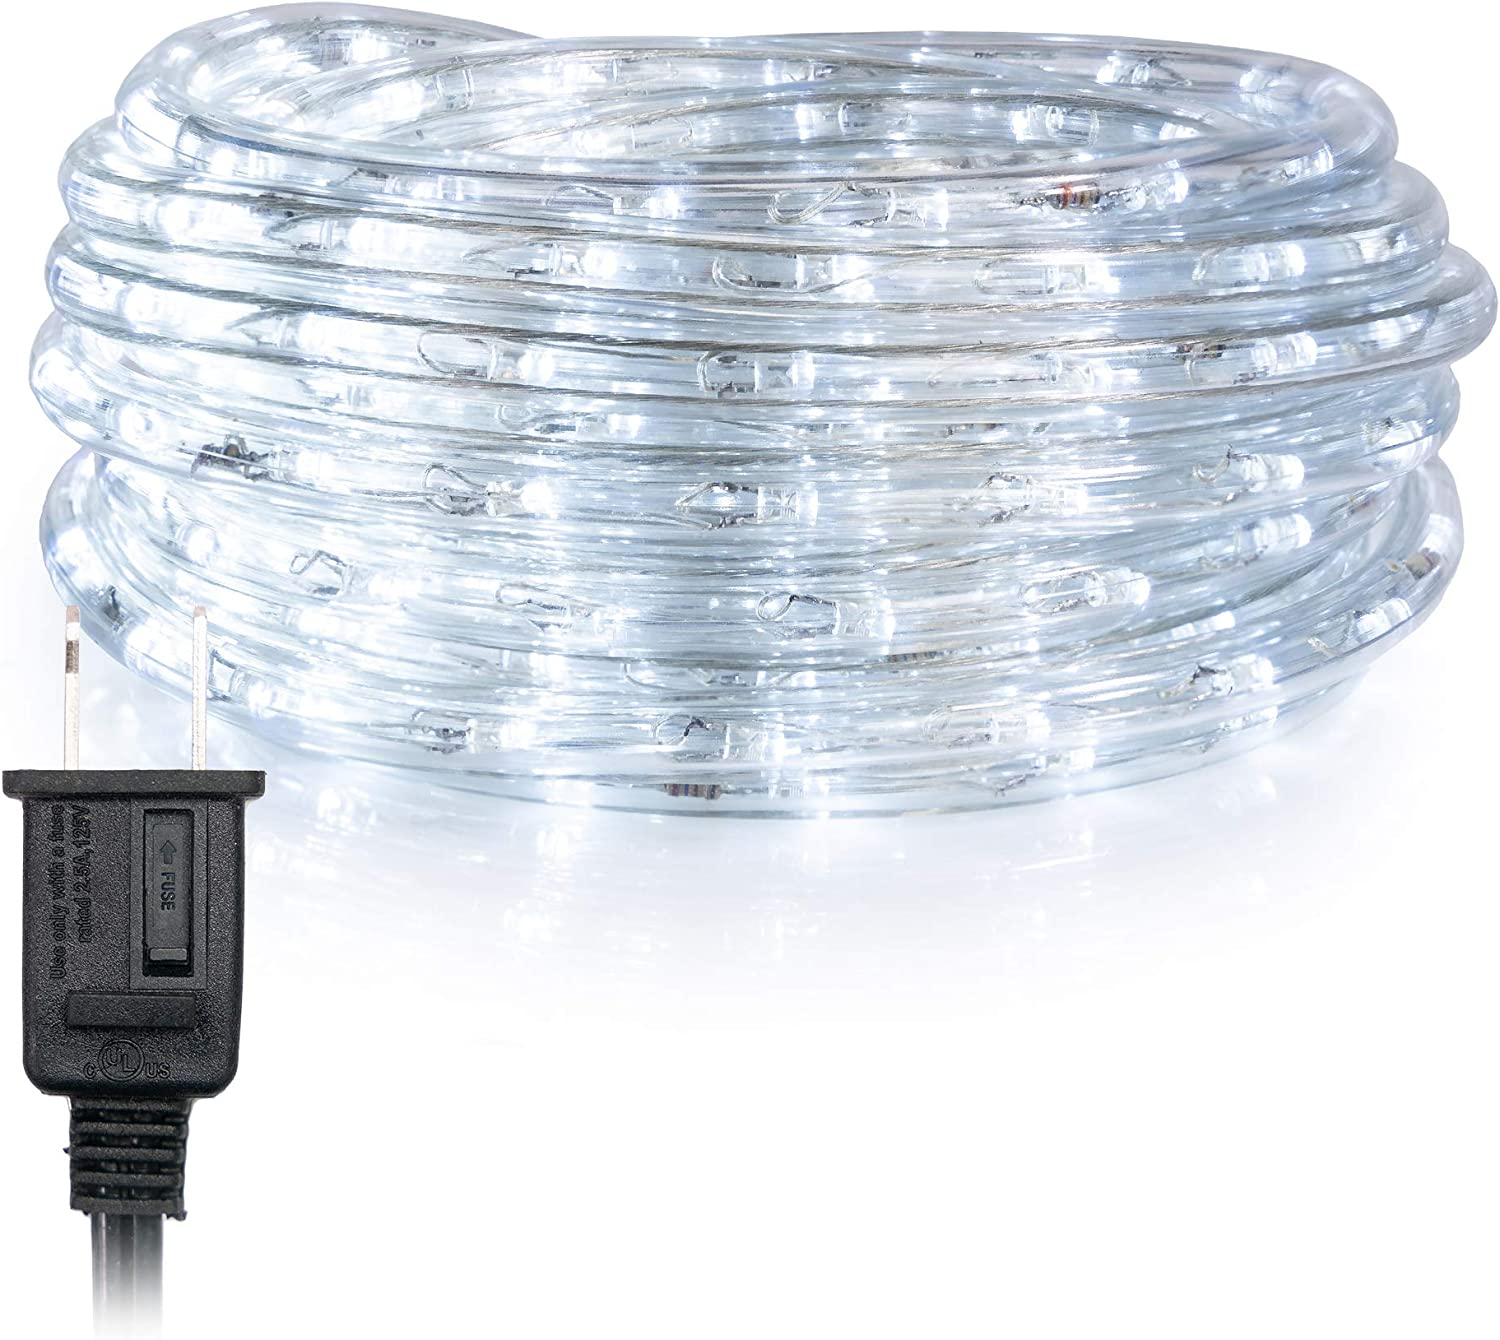 WYZworks 100' feet Cool White 3 8  LED Rope Lights   UL & ETL Certified IP65 Water Resistant Flexible 2 Wire Accent Holiday Christmas Party Decoration Indoor Outdoor Lighting